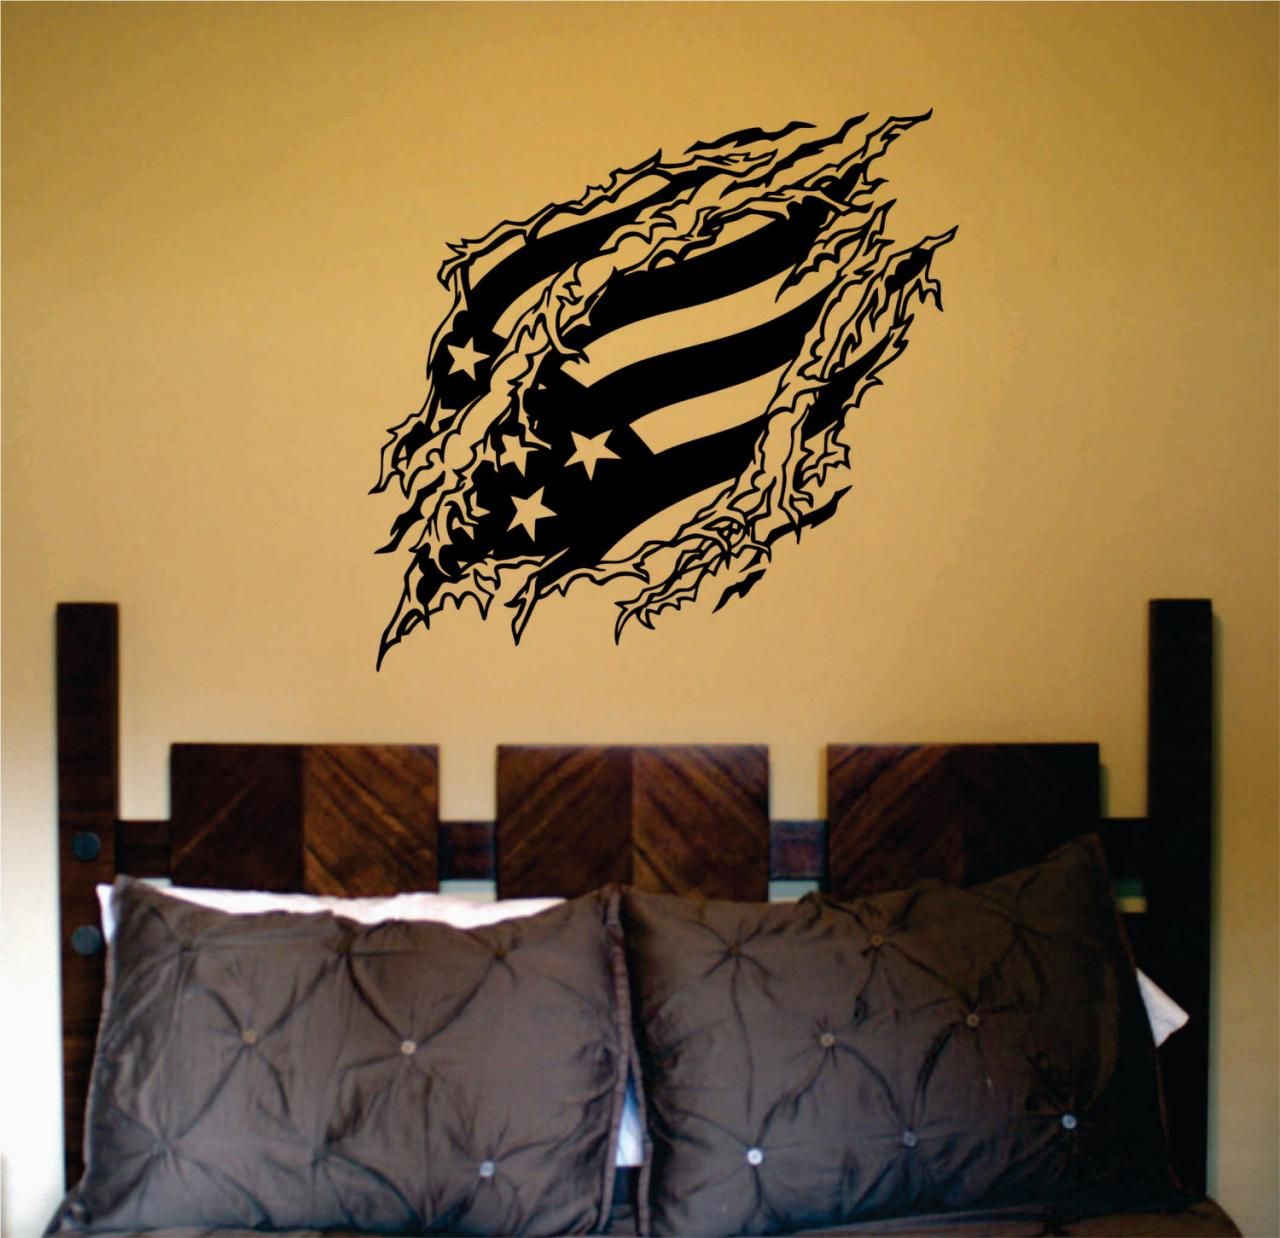 Flag Ripping Thru Wall Mural Decal Sticker Vinyl